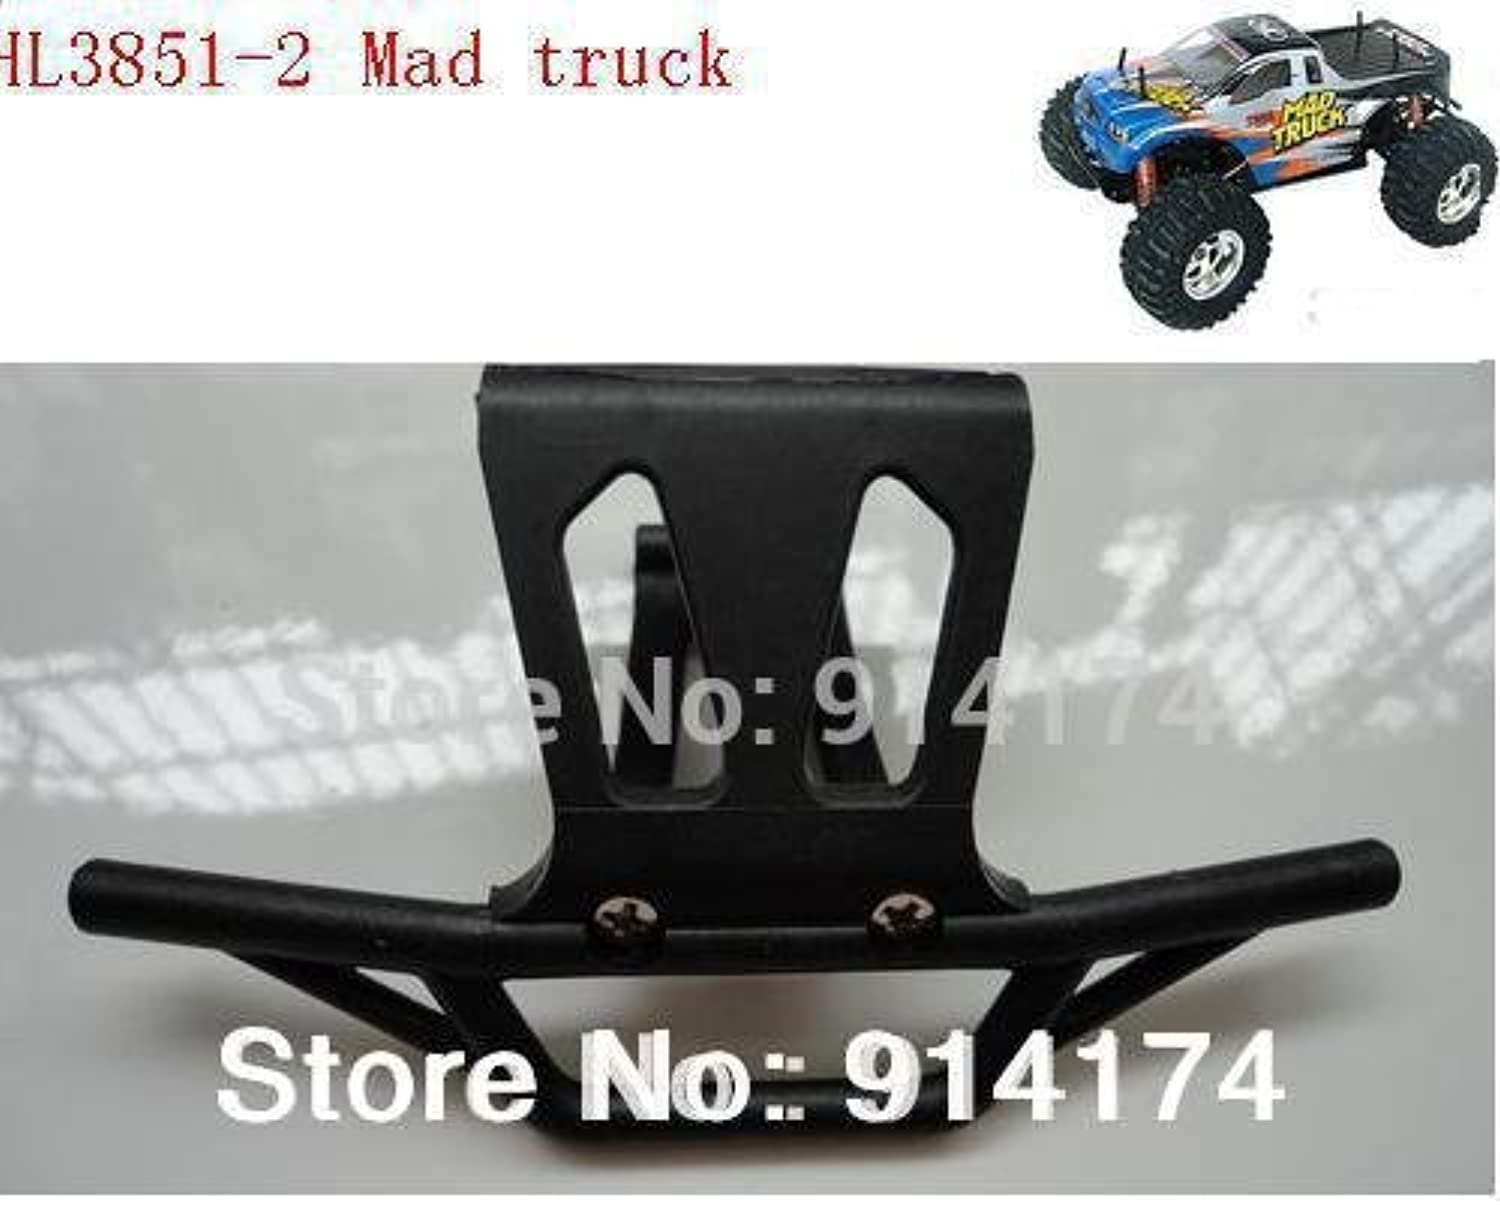 2pcs lot HengLong HL38512 1 10 RC Mad Truck Truck Truck